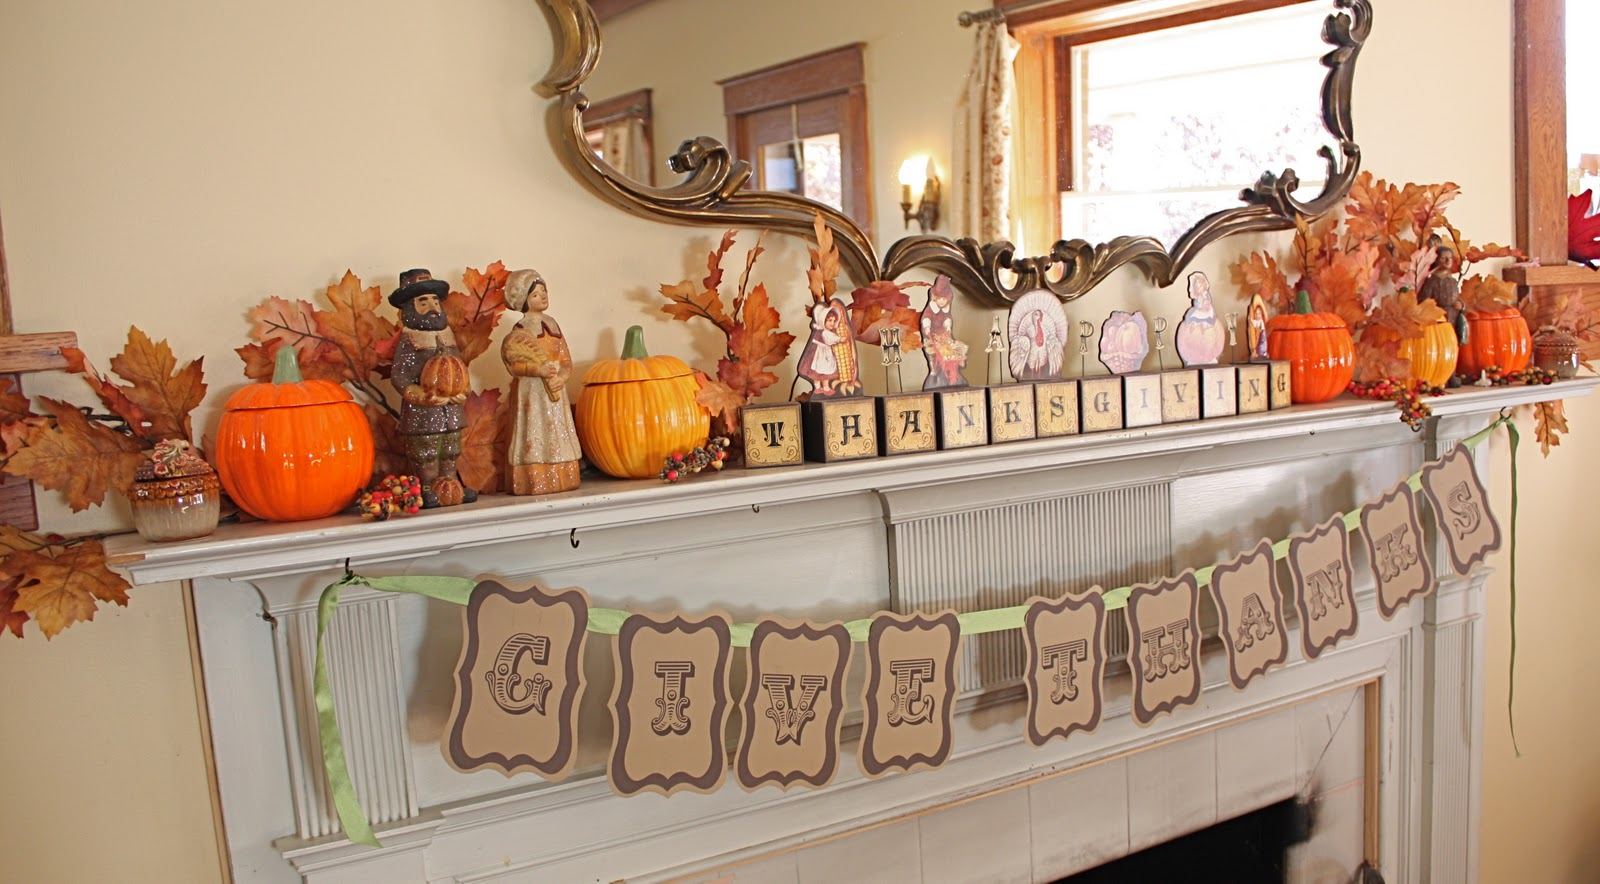 At second street thanksgiving mantel and other decor Thanksgiving decorating ideas